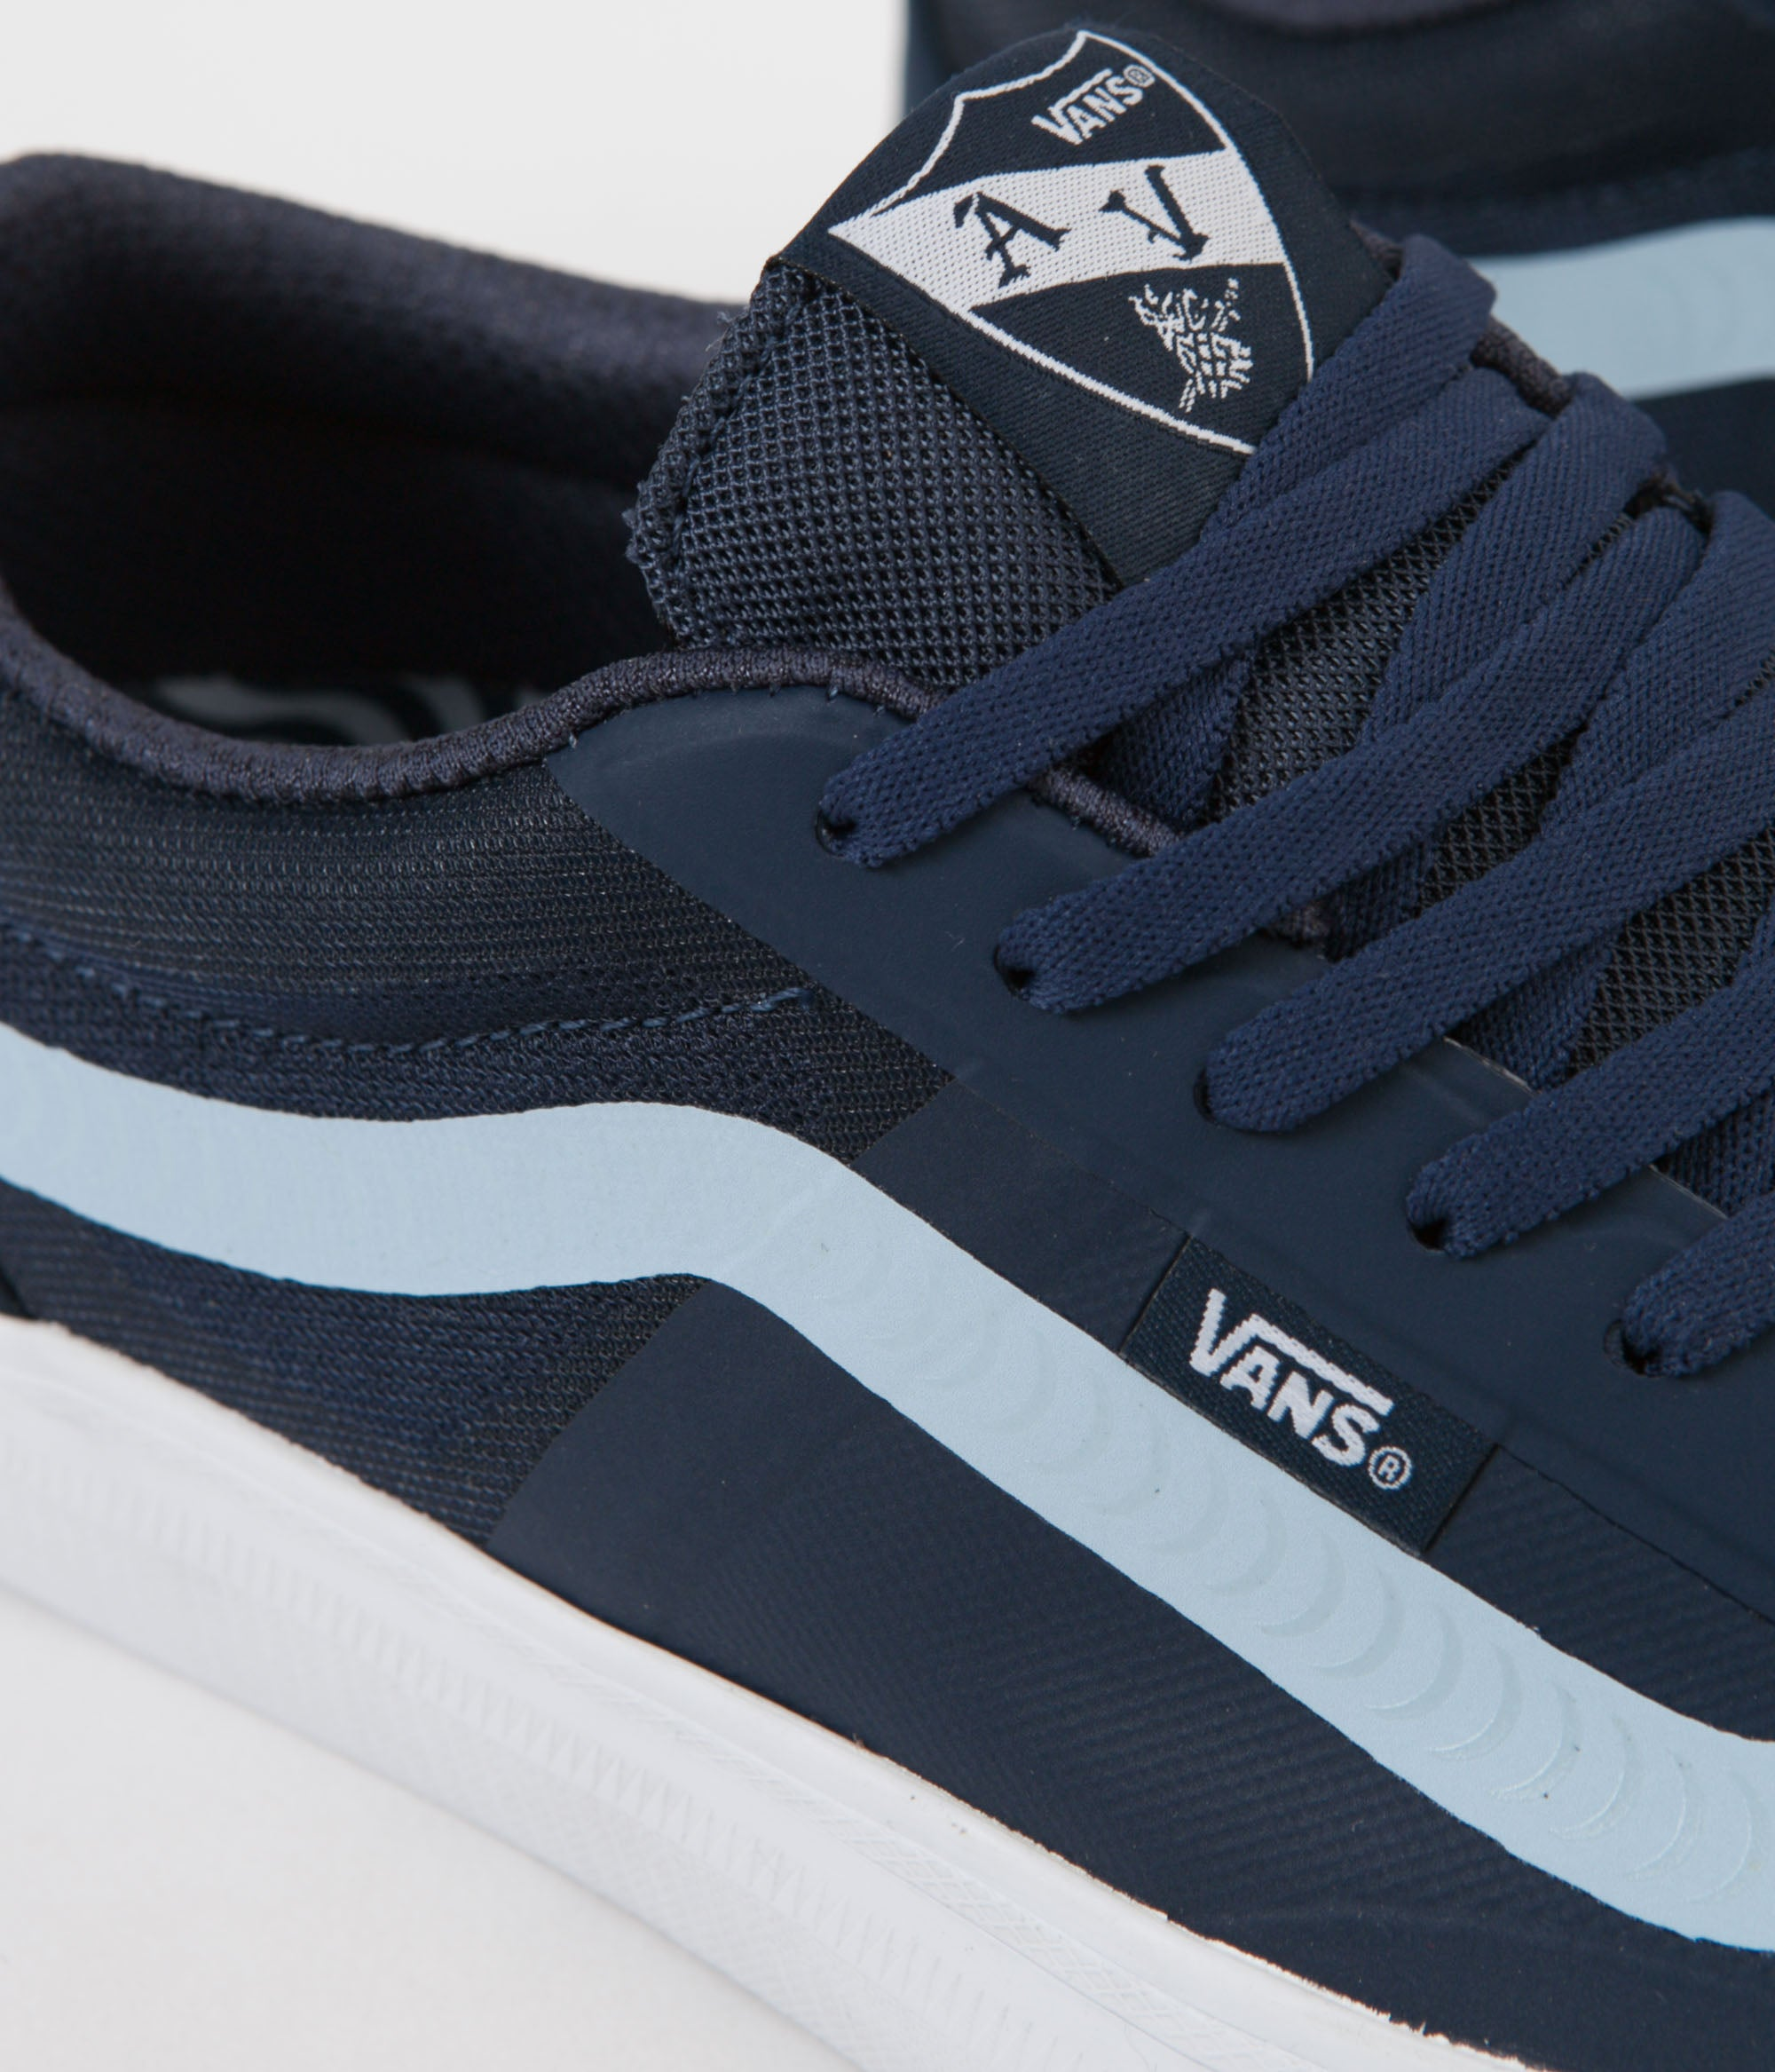 302187a083 ... Vans x Spitfire AV Rapidweld Pro Lite Shoes - Dress Blues ...